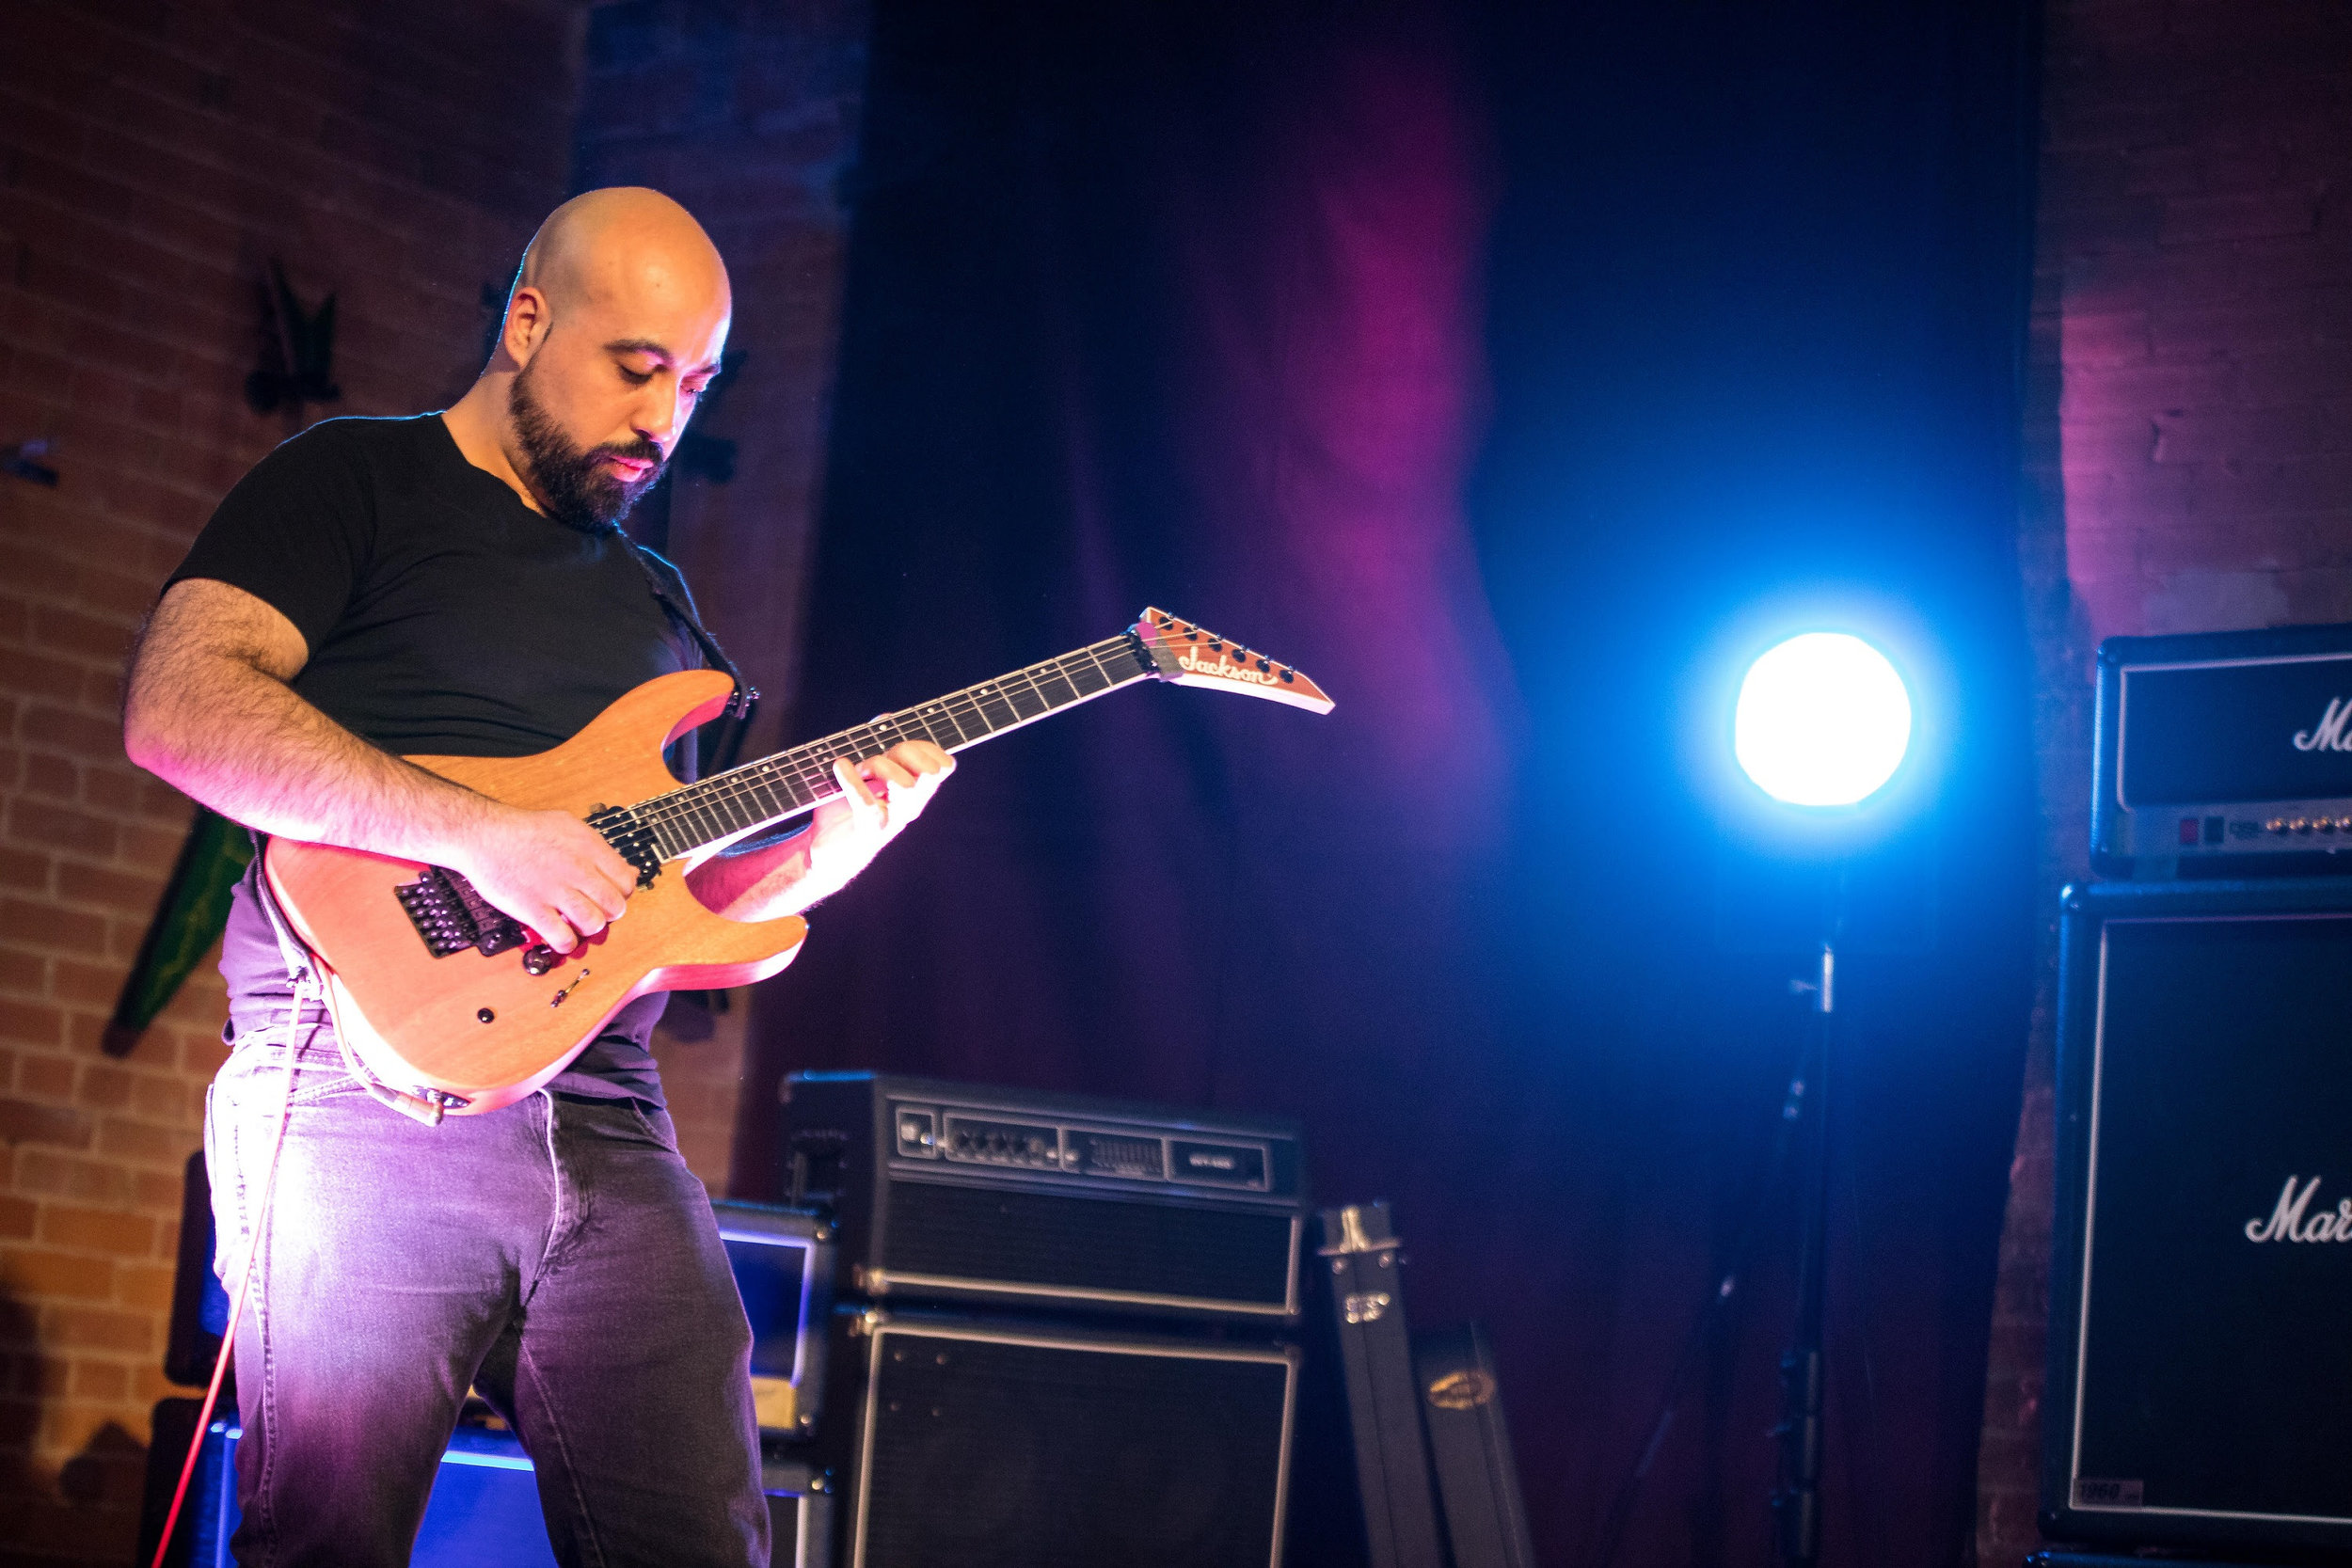 """Frankie Caracci , known for his guitar work in Canadian symphonic death metal band  Vesperia , has been simmering a side project entitled  """"Cellular Damascus""""  and is now ready to give listeners around the world a taste of what he's been doing on March 13, 2019.   """"Cellular Damascus""""  is an instrumental solo project that came to light after Caracci's win on season one of """"Shredders of Metal"""" presented by Banger TV. Technical, groovy and energetic,  """"Cellular Damascus""""  lets the listener focus on the guitar work that he takes great pride in orchestrating.   """"I want fans to have fun listening to it. I wanted to create interesting melodic phrases but still have heavy riffs to headband along with, shred hard but not lose sight of the music and try to have a clear mix where things aren't overly processed but all instruments/parts are still clear and audible.""""   Working consciously on each track, the scene for the album is a suspenseful set with """"So It Begins"""" and concludes majestically with """"Fall Of The Hammer"""". All four tracks on this debut flow together and show off excellent musicianship. Excited to be focusing on more solo work in the future, Caracci has confirmed another release in the future.    """"Cellular Damascus""""  is now out as of March 13, 2019, and available for stream and download on  Bandcamp ,  Spotify ,  Youtube ,  iTunes ."""